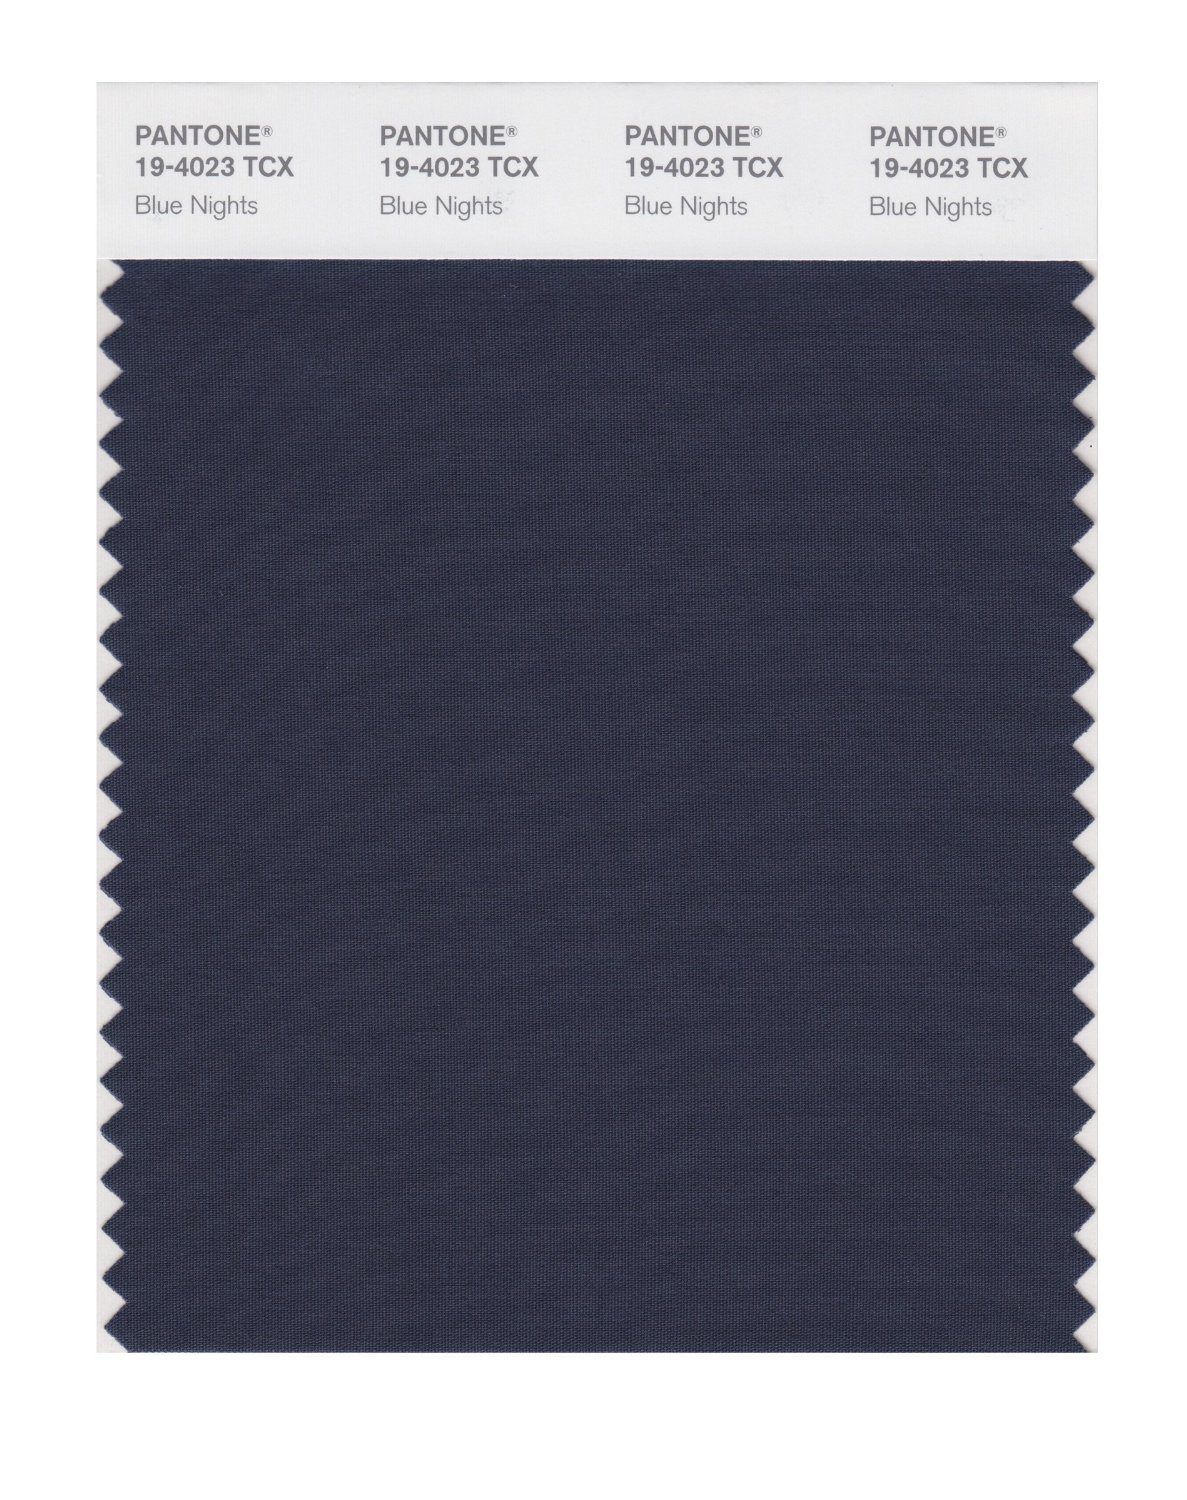 Pantone Smart Swatch 19-4023 Blue Nights